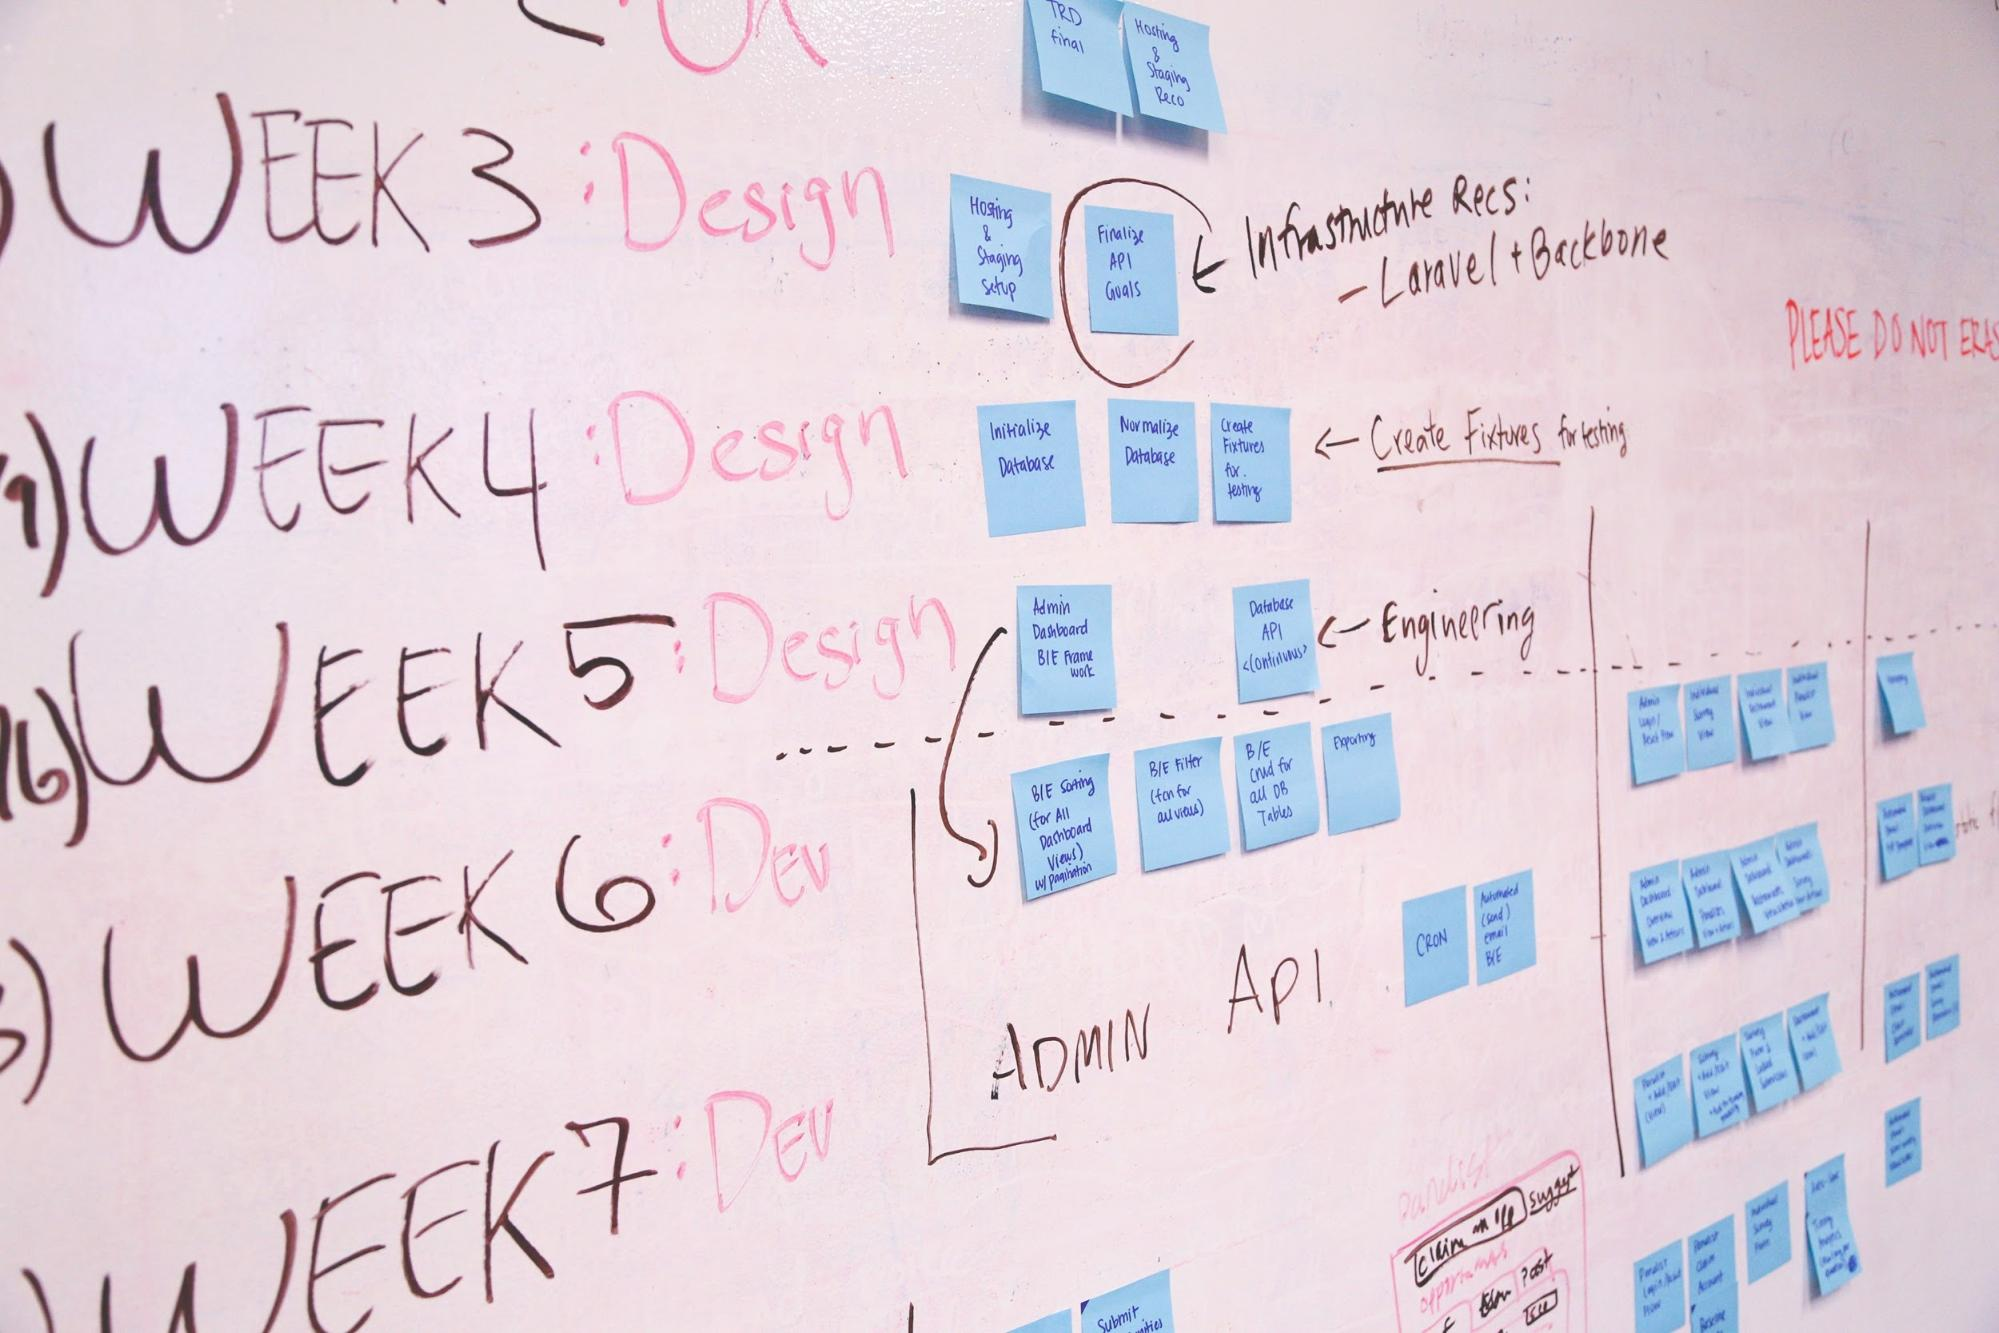 Project Management Classes NYC | Project Management Training